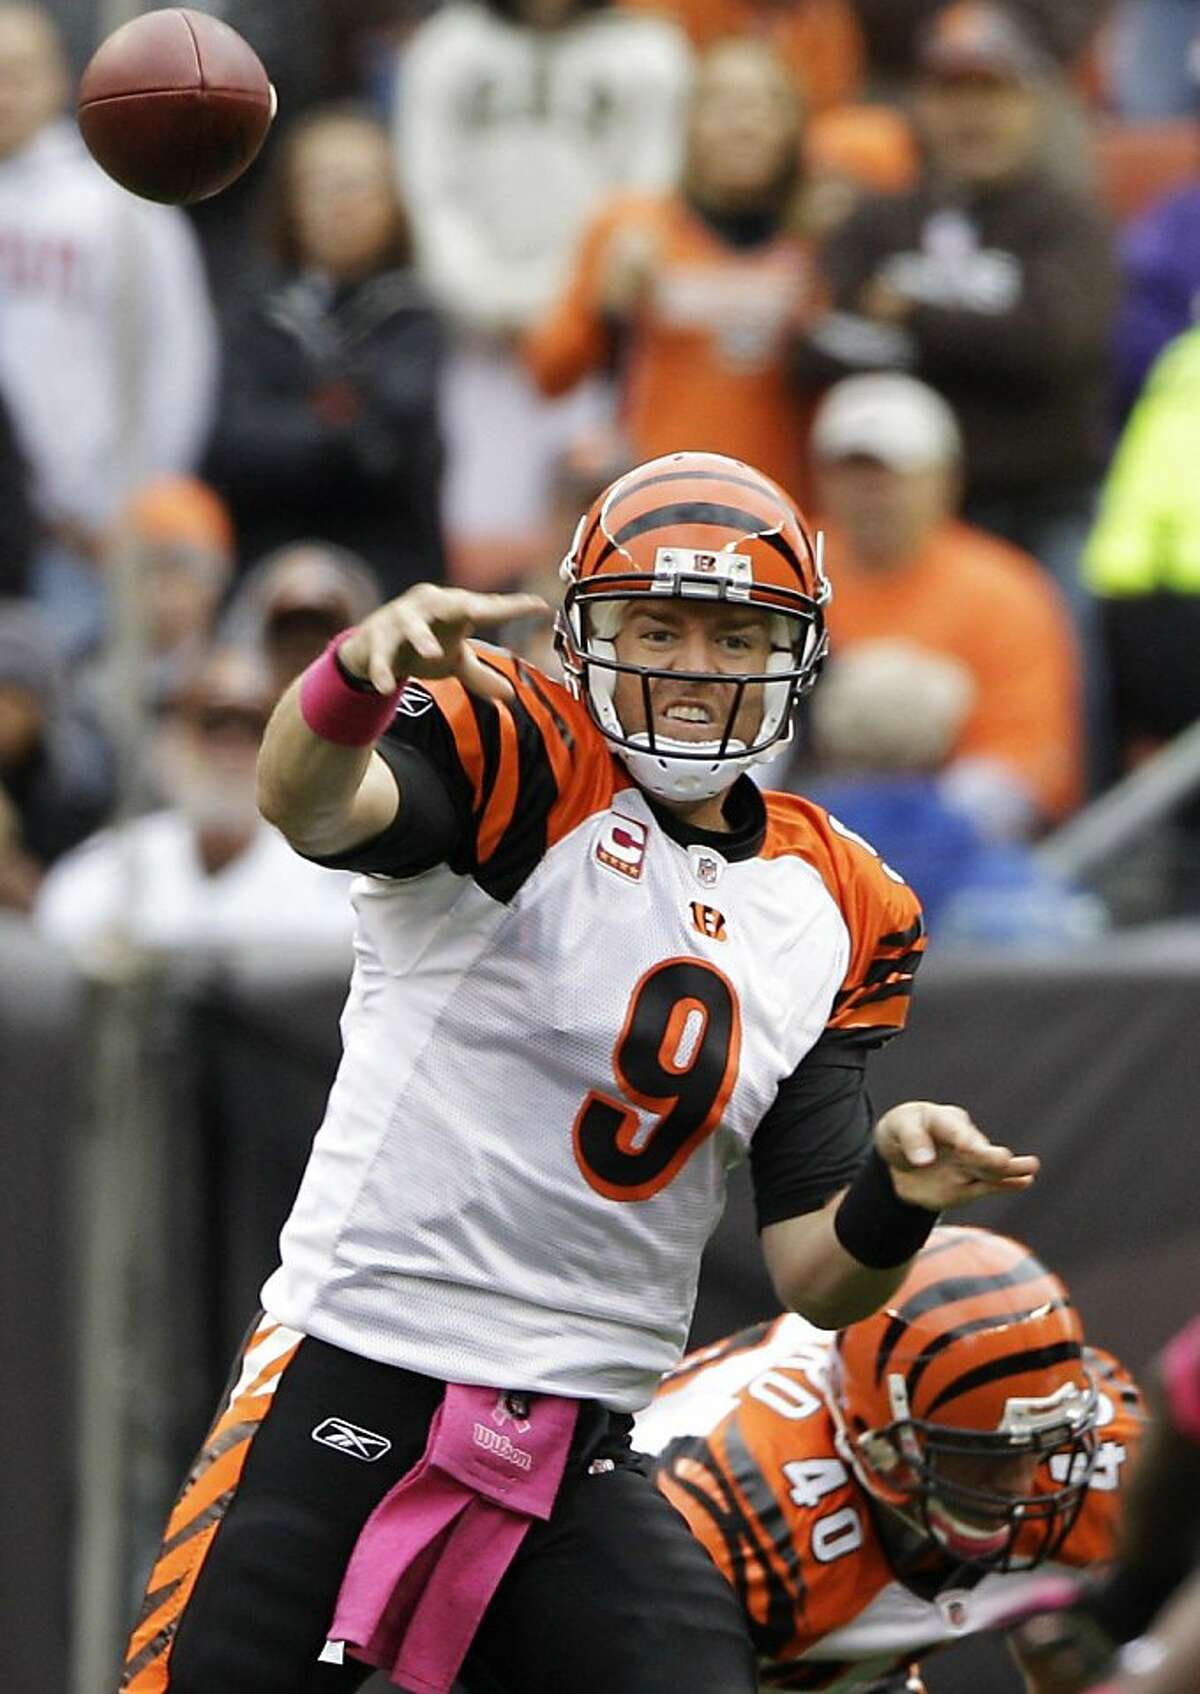 Cincinnati Bengals quarterback Carson Palmer passes against the Cleveland Browns in the first quarter of an NFL football game on Sunday, Oct. 3, 2010, in Cleveland. (AP Photo/Amy Sancetta) Ran on: 10-04-2010 Carson Palmer